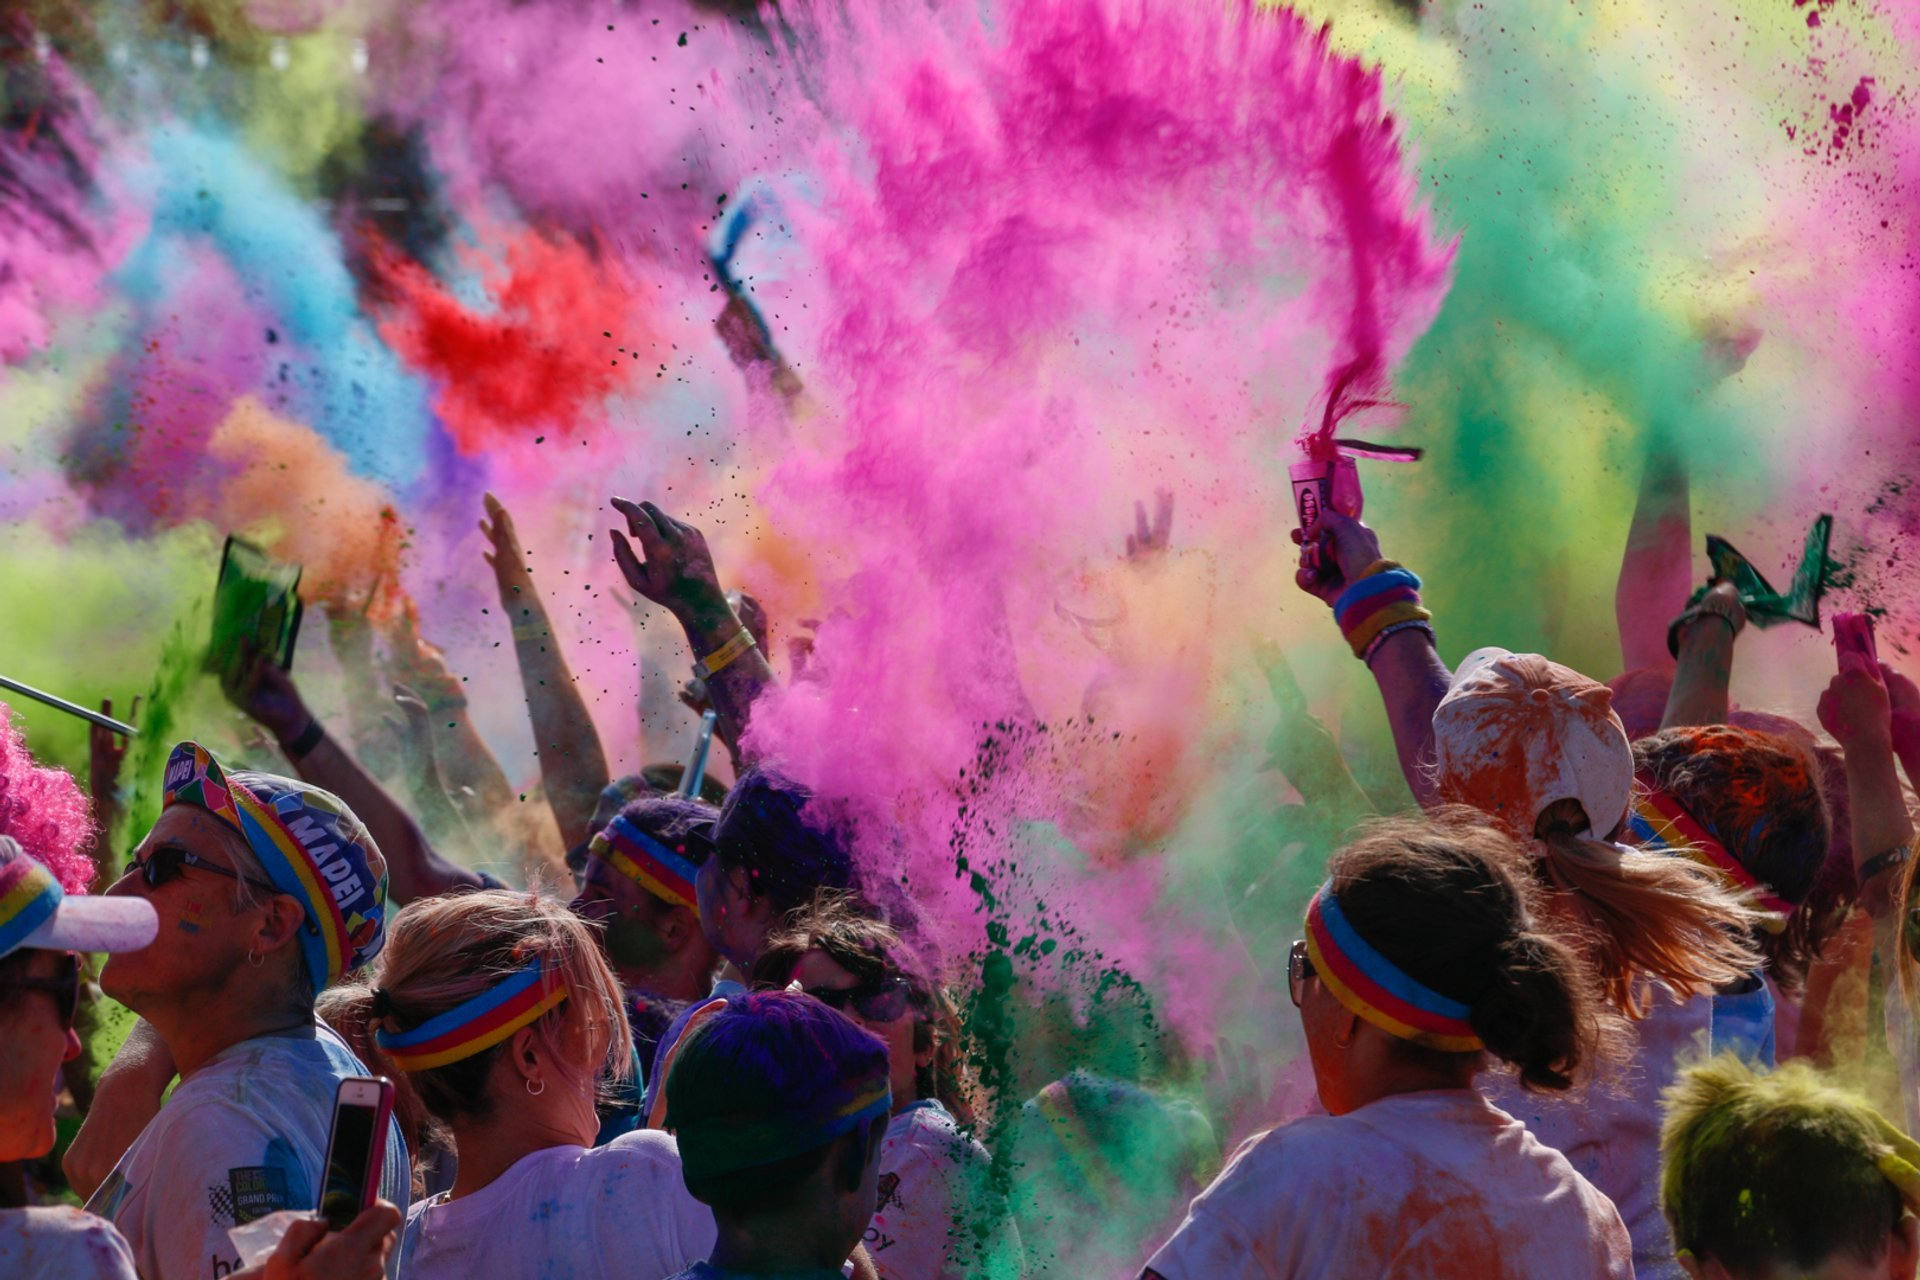 Best time to see The Color Run in Melbourne 2019